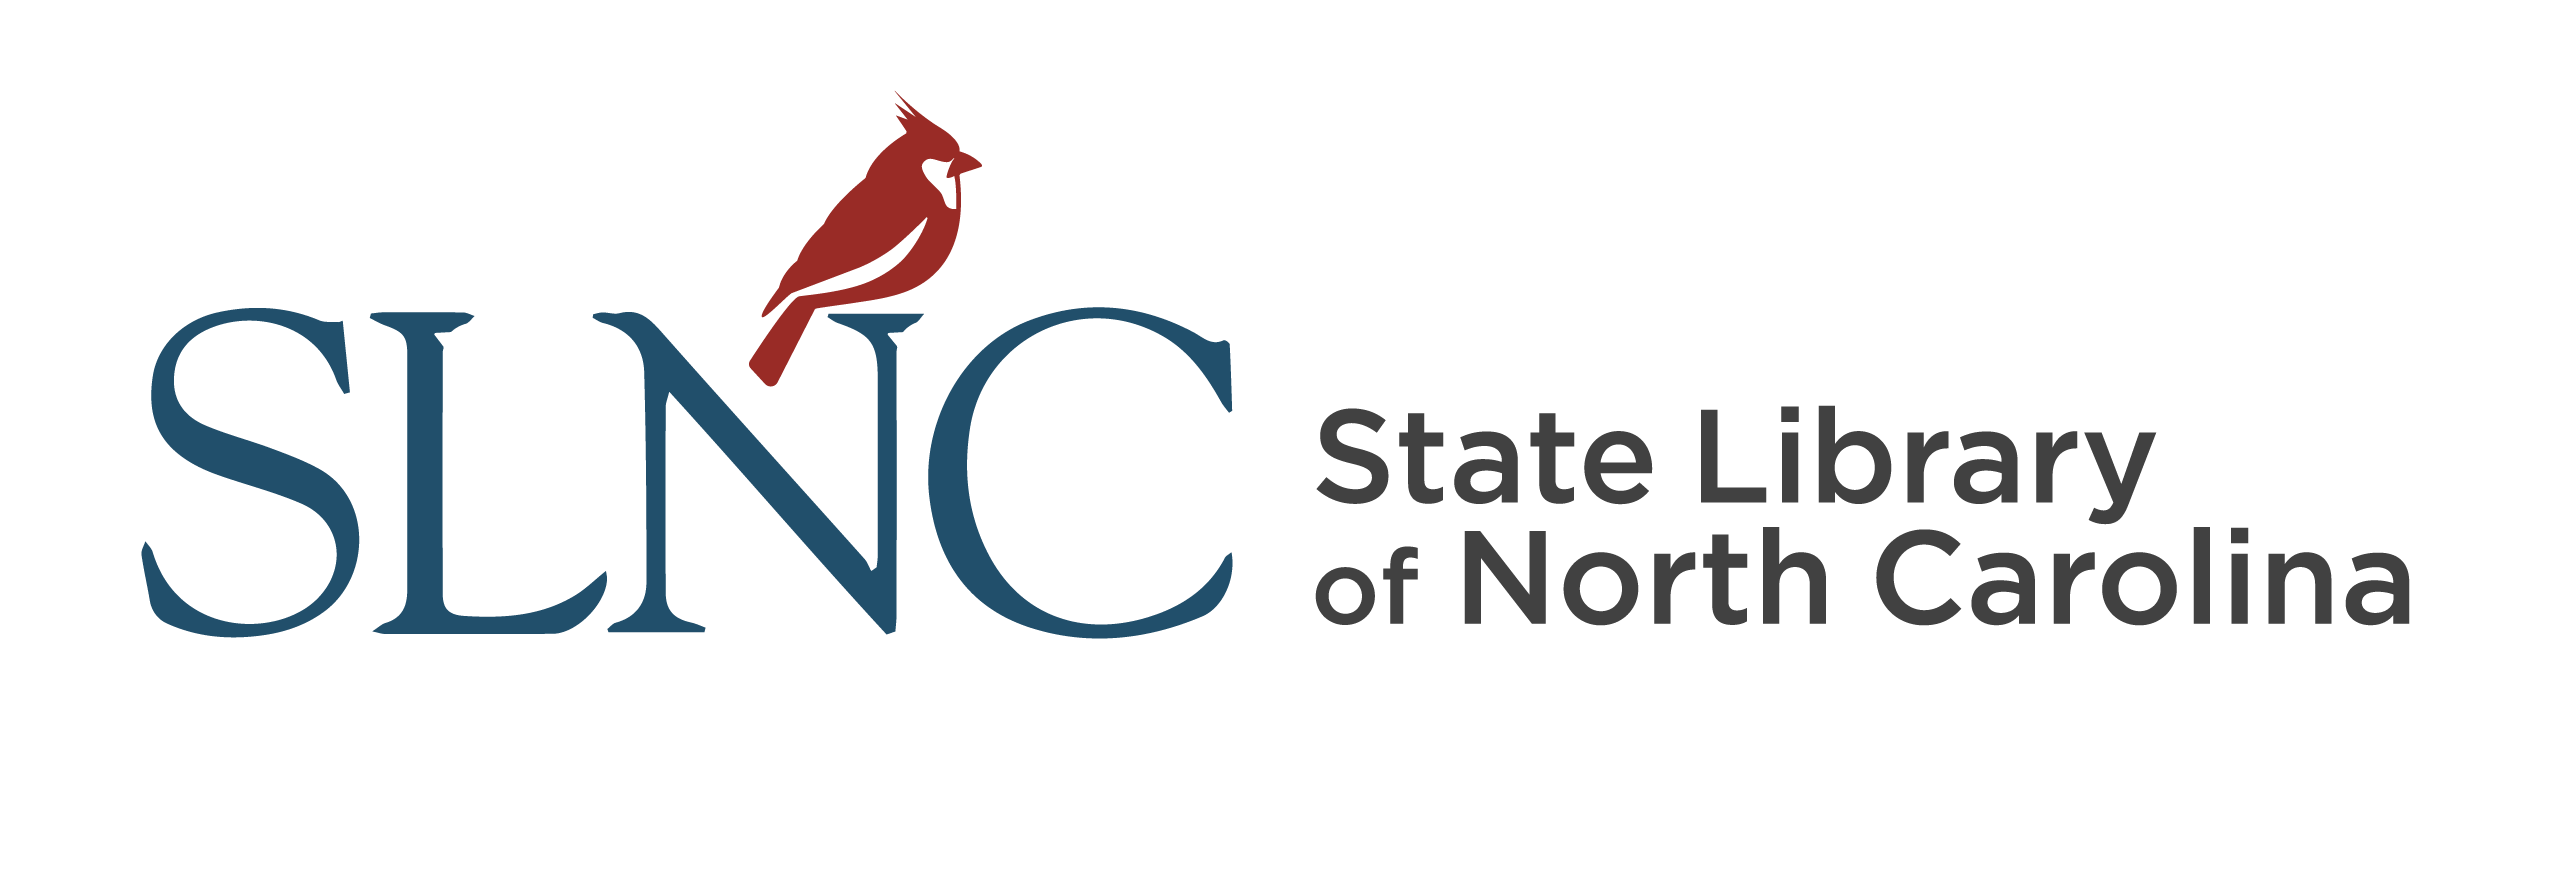 State Symbols and Official Adoptions | NCpedia